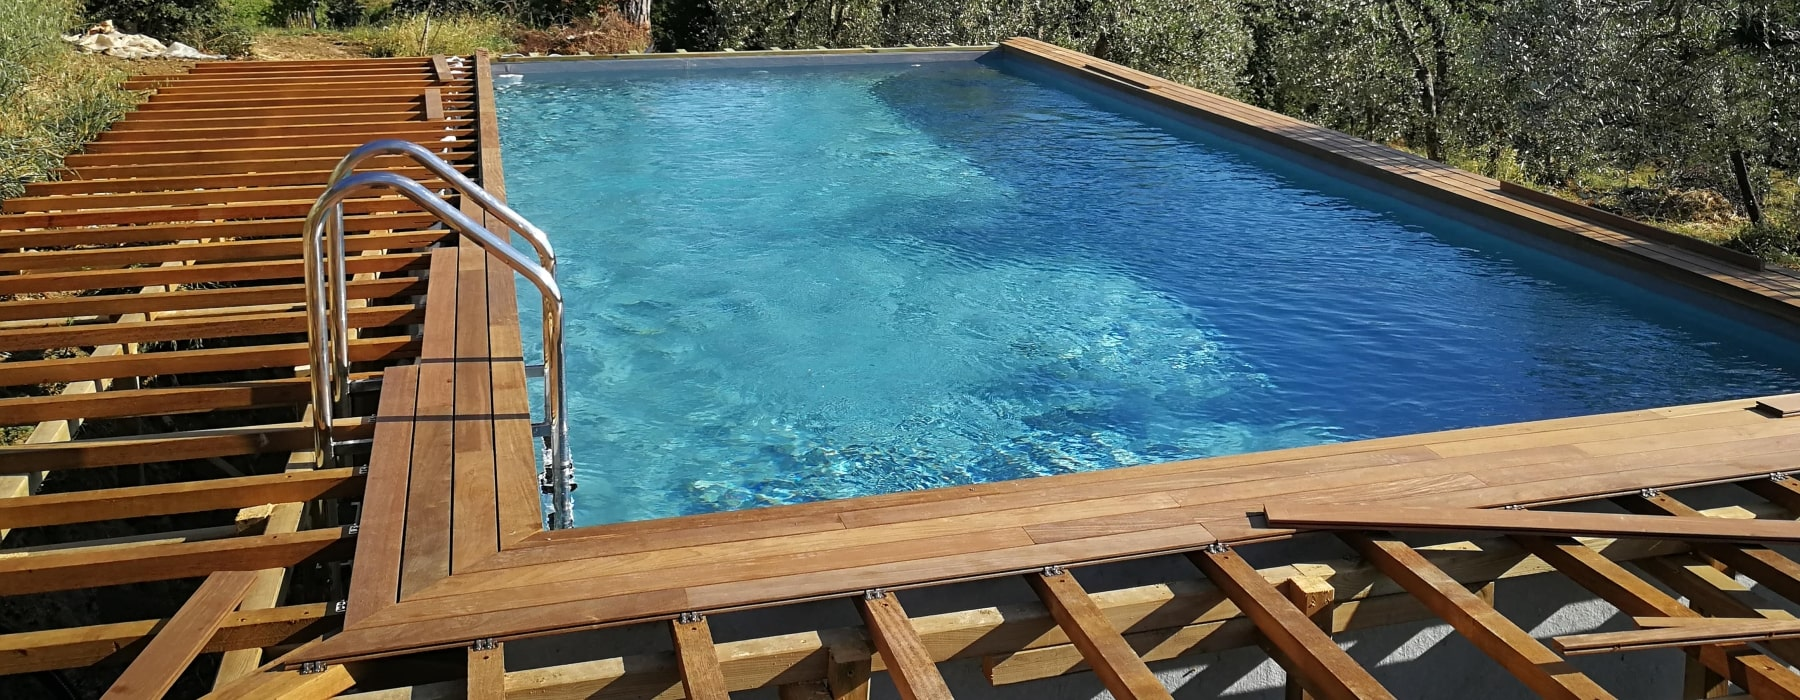 Piscine seminterrate in Toscana  by Gardenpool